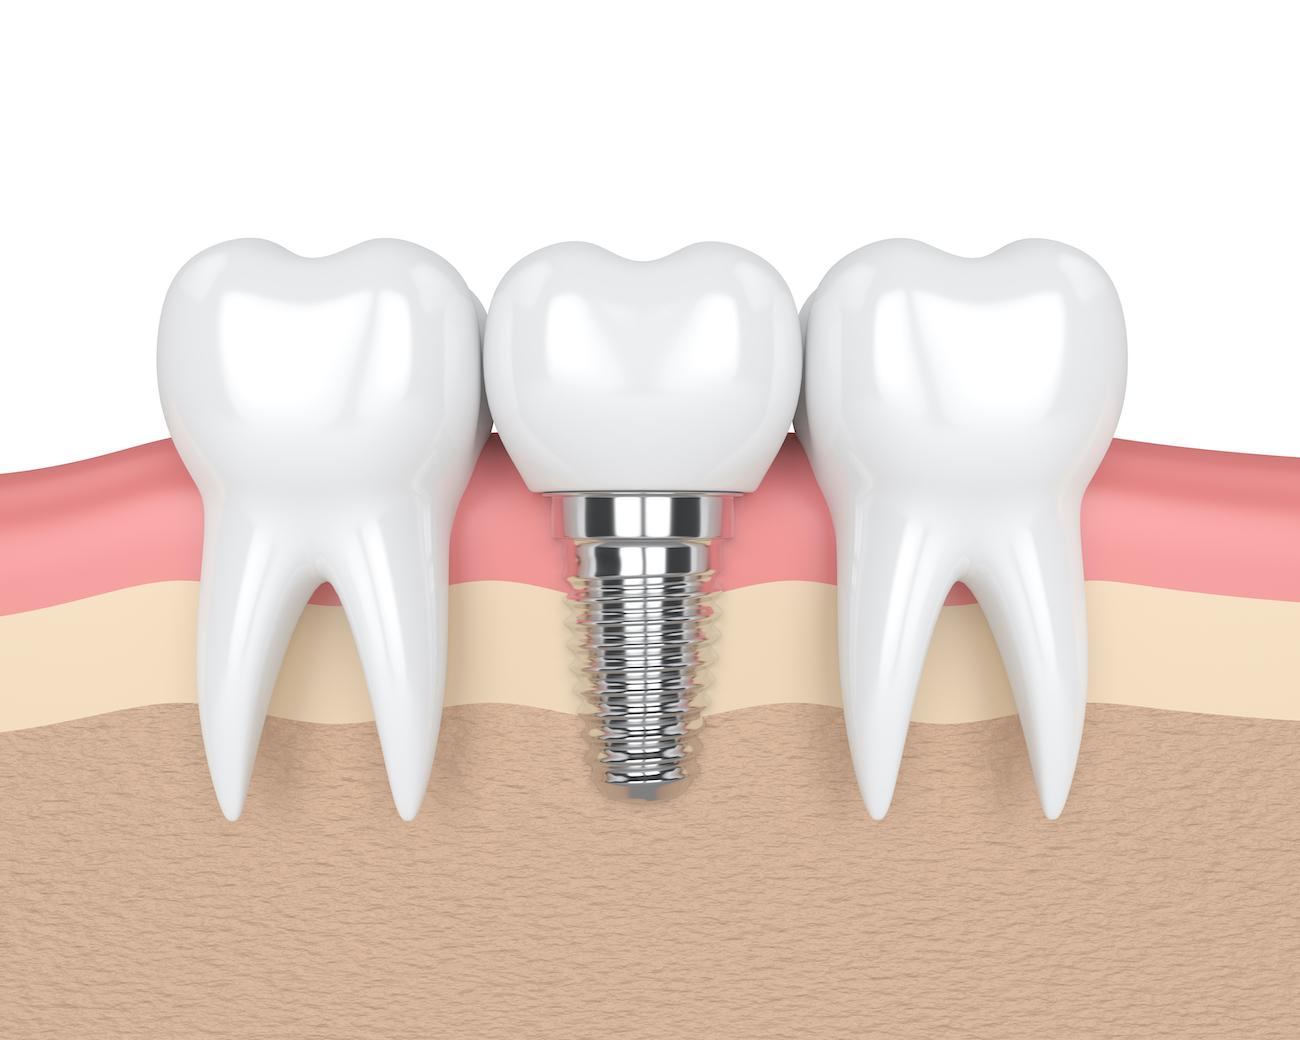 Diagram showing what a dental implant looks like next to natural teeth